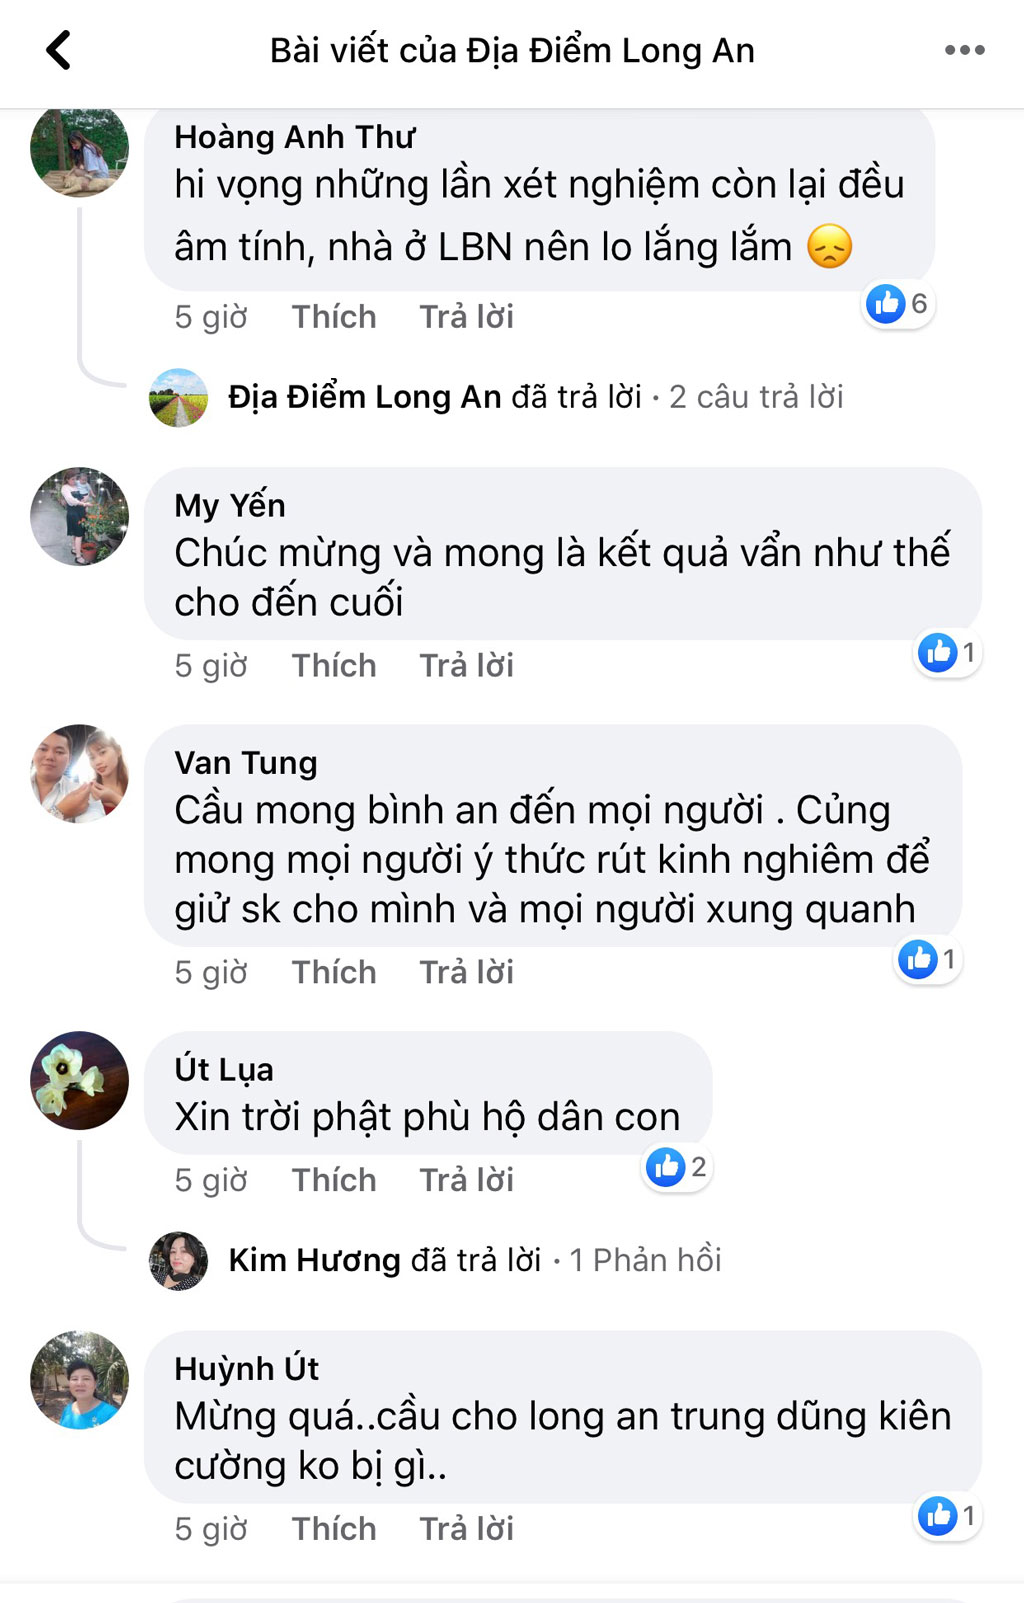 Several Facebook accounts are excited by the news of F1 cases in Long An involving patient 1440 negative for the first time on the Long An Destination page